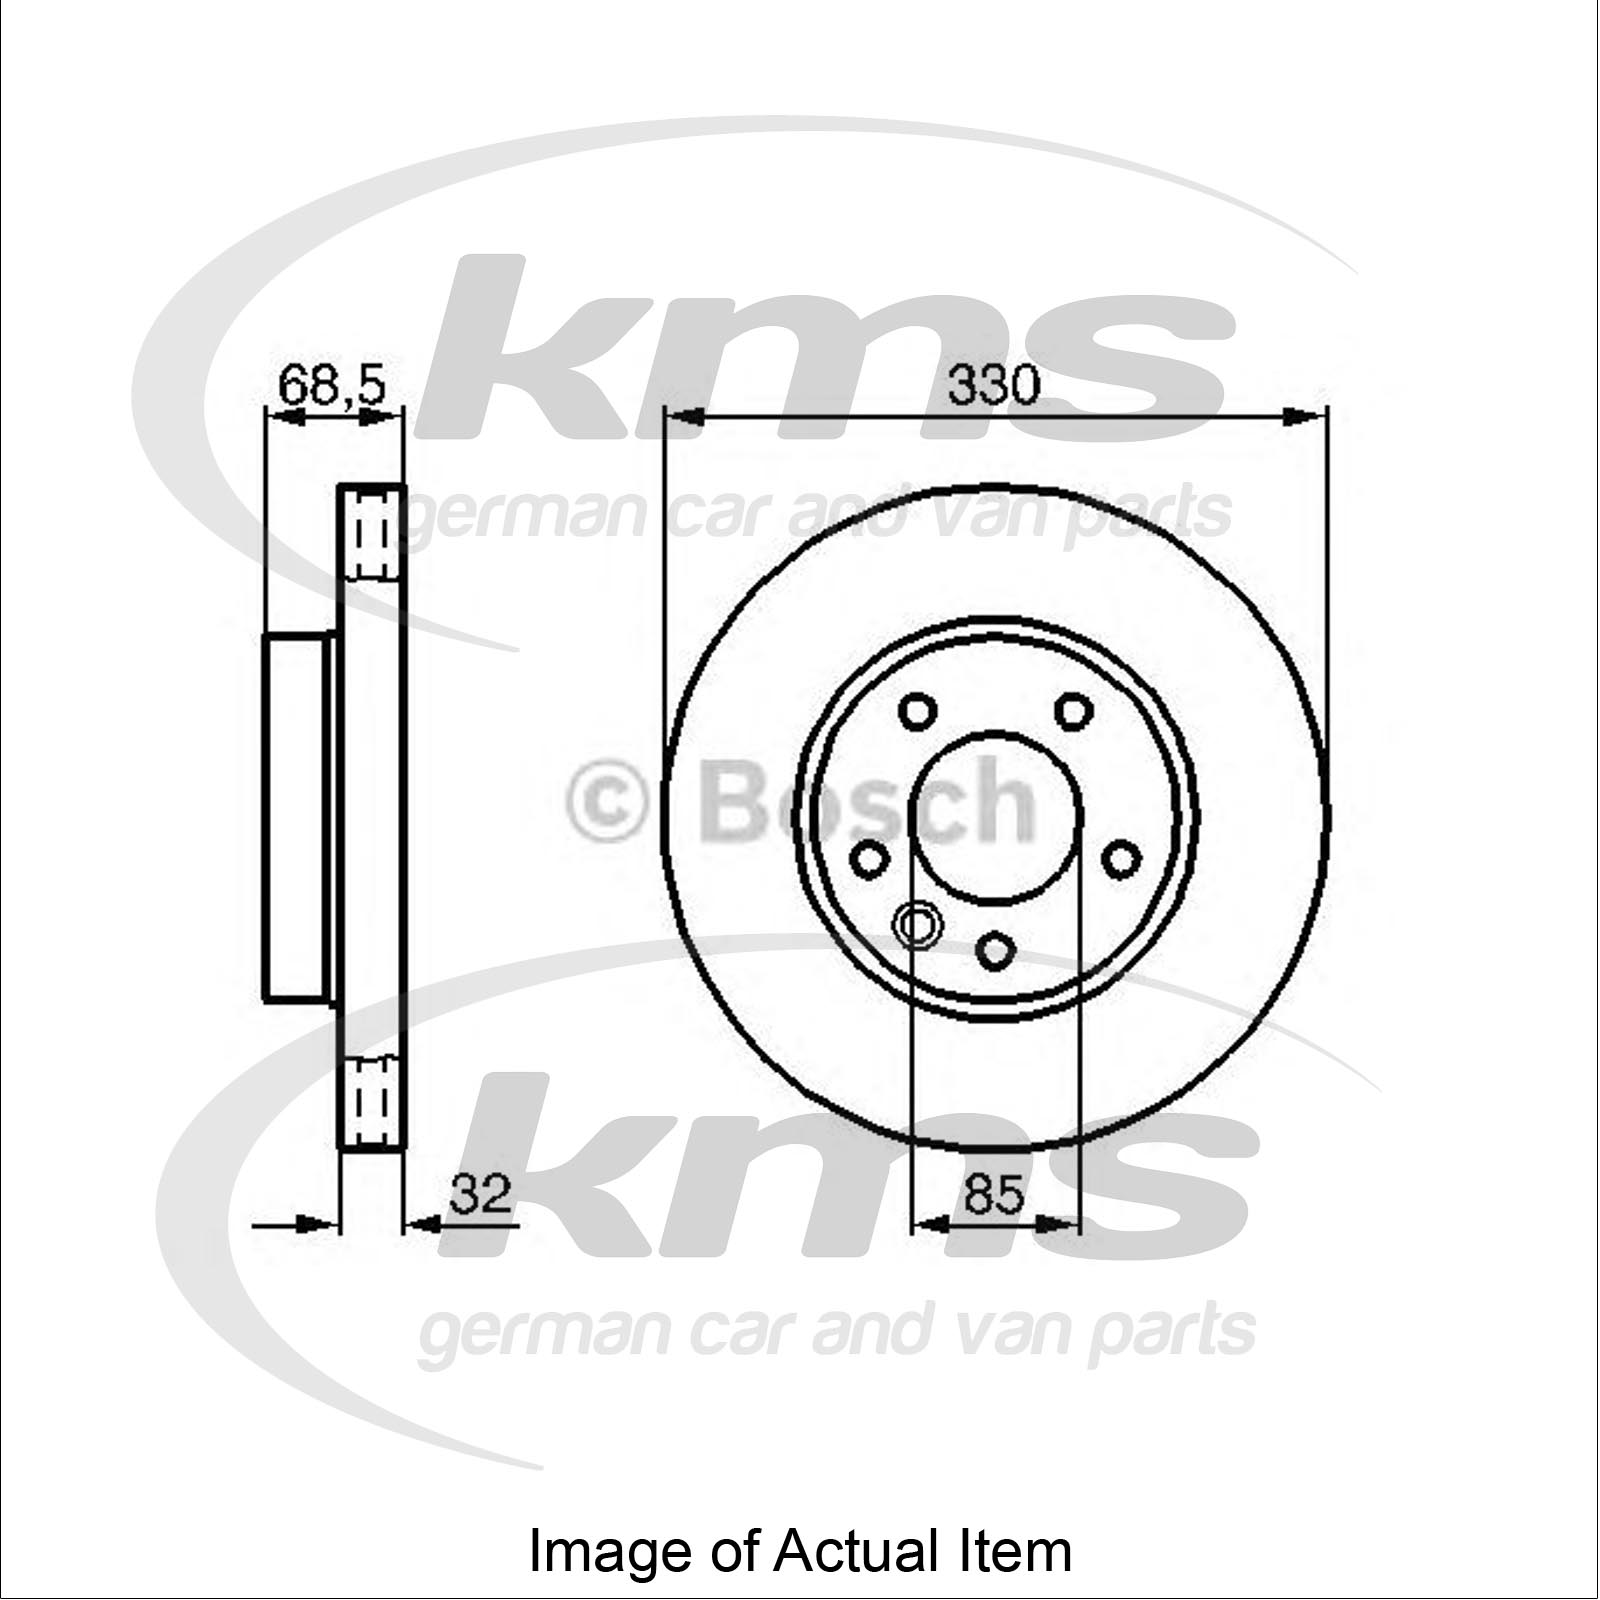 E Wheels Electric Scooter Wiring Diagram besides Qmb139 Ignition Wiring Diagram furthermore Moped Engine Exploded Diagram Html also Hoa Switch Wiring Diagram Harness further Woodruff Keys Gy6 125cc 152qmi 157qmj Scooter Moped Parts 61124. on qmb139 wiring diagram